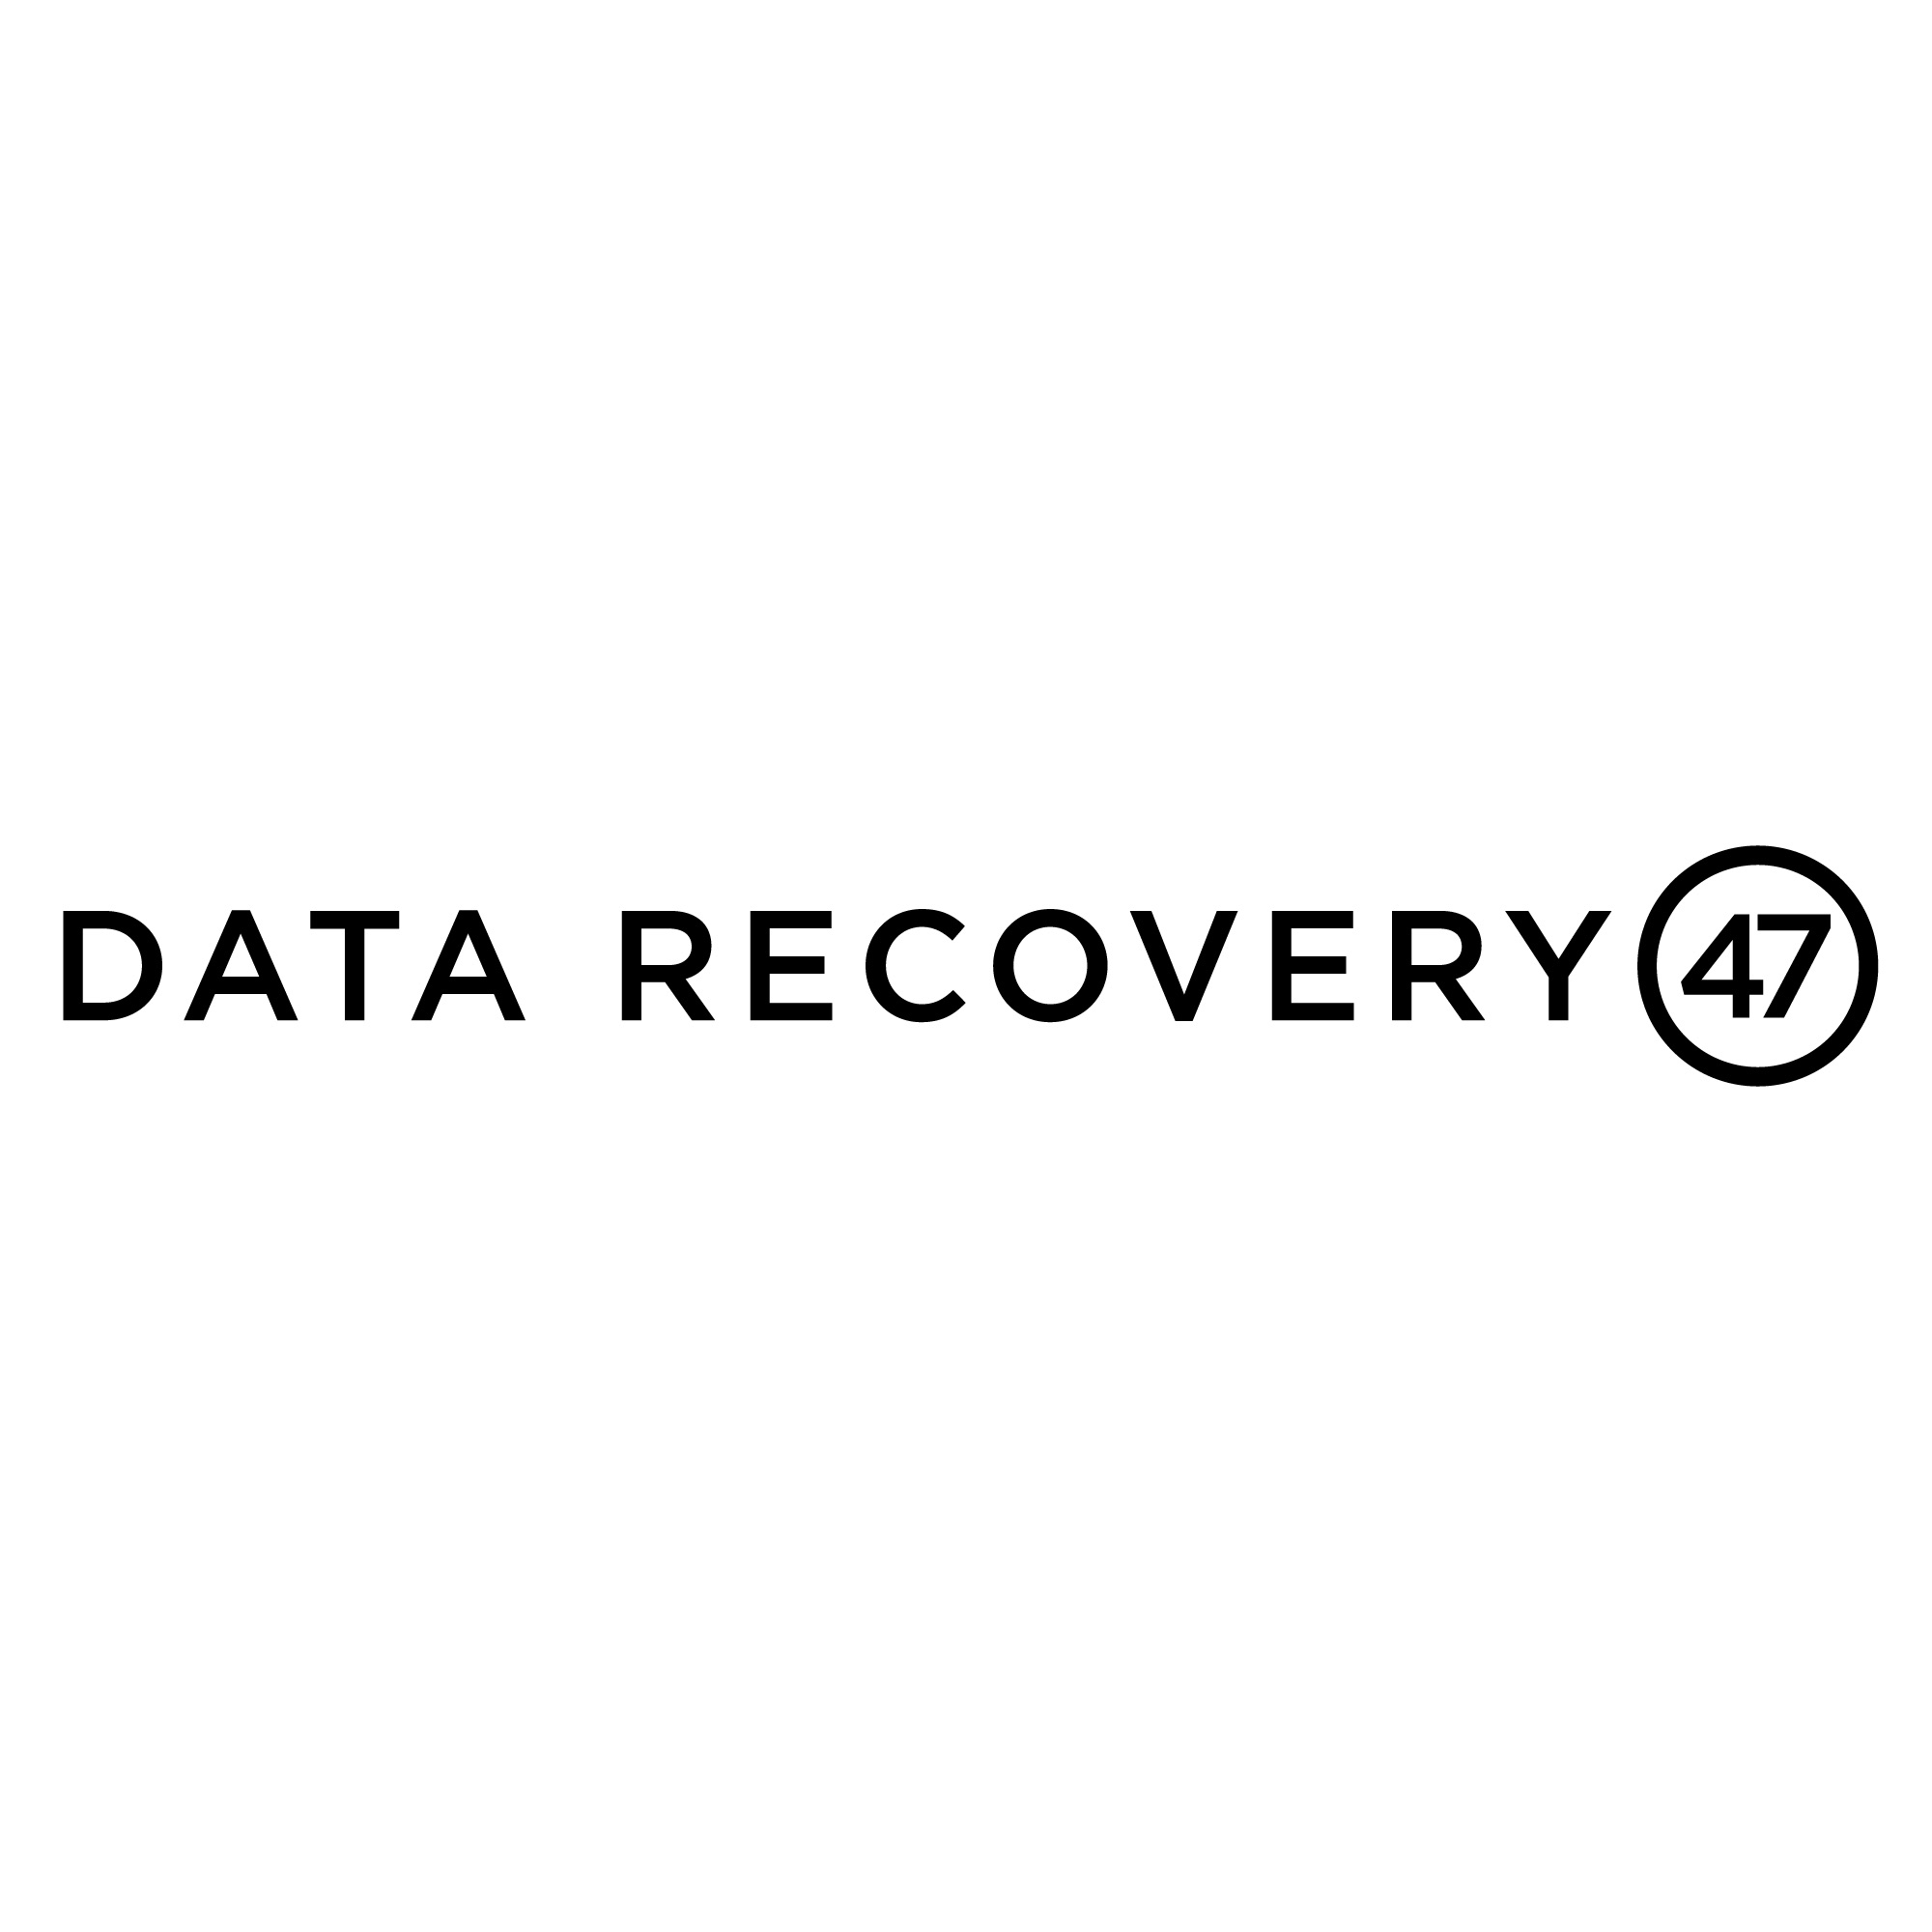 hard drive recovery Everything You Need to Know about Heads on Your Hard Drive Recovery DataRecovery logo 1